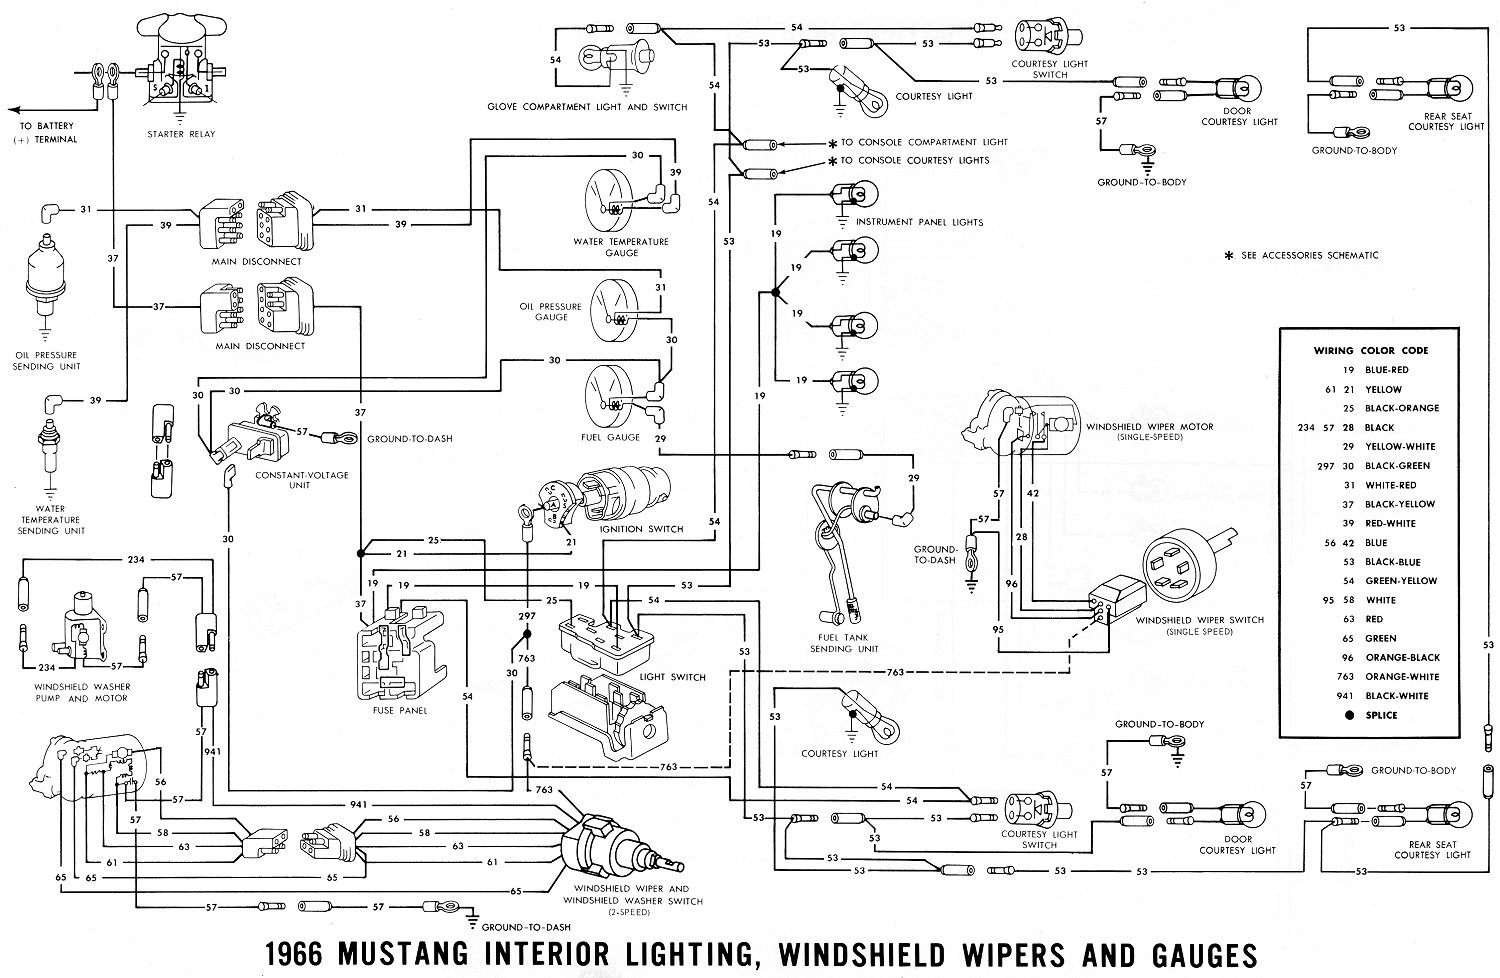 engine wiring diagrams jaguar x type 2 0 diesel diagram 1966 mustang average joe restoration schematic